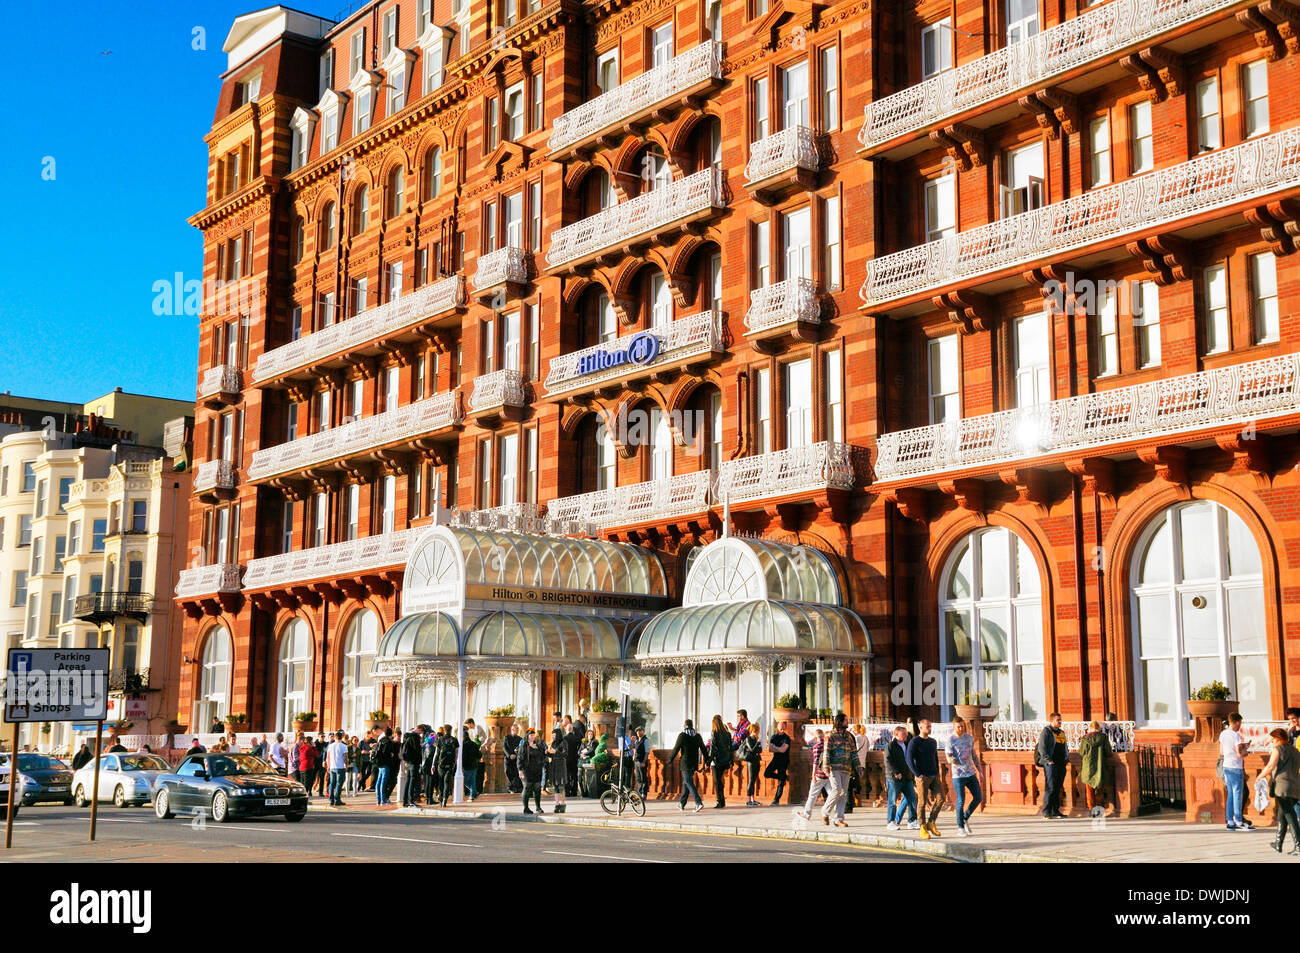 Hilton Brighton Metropole hotel, King's Road, Brighton, East Sussex, England, UK - Stock Image